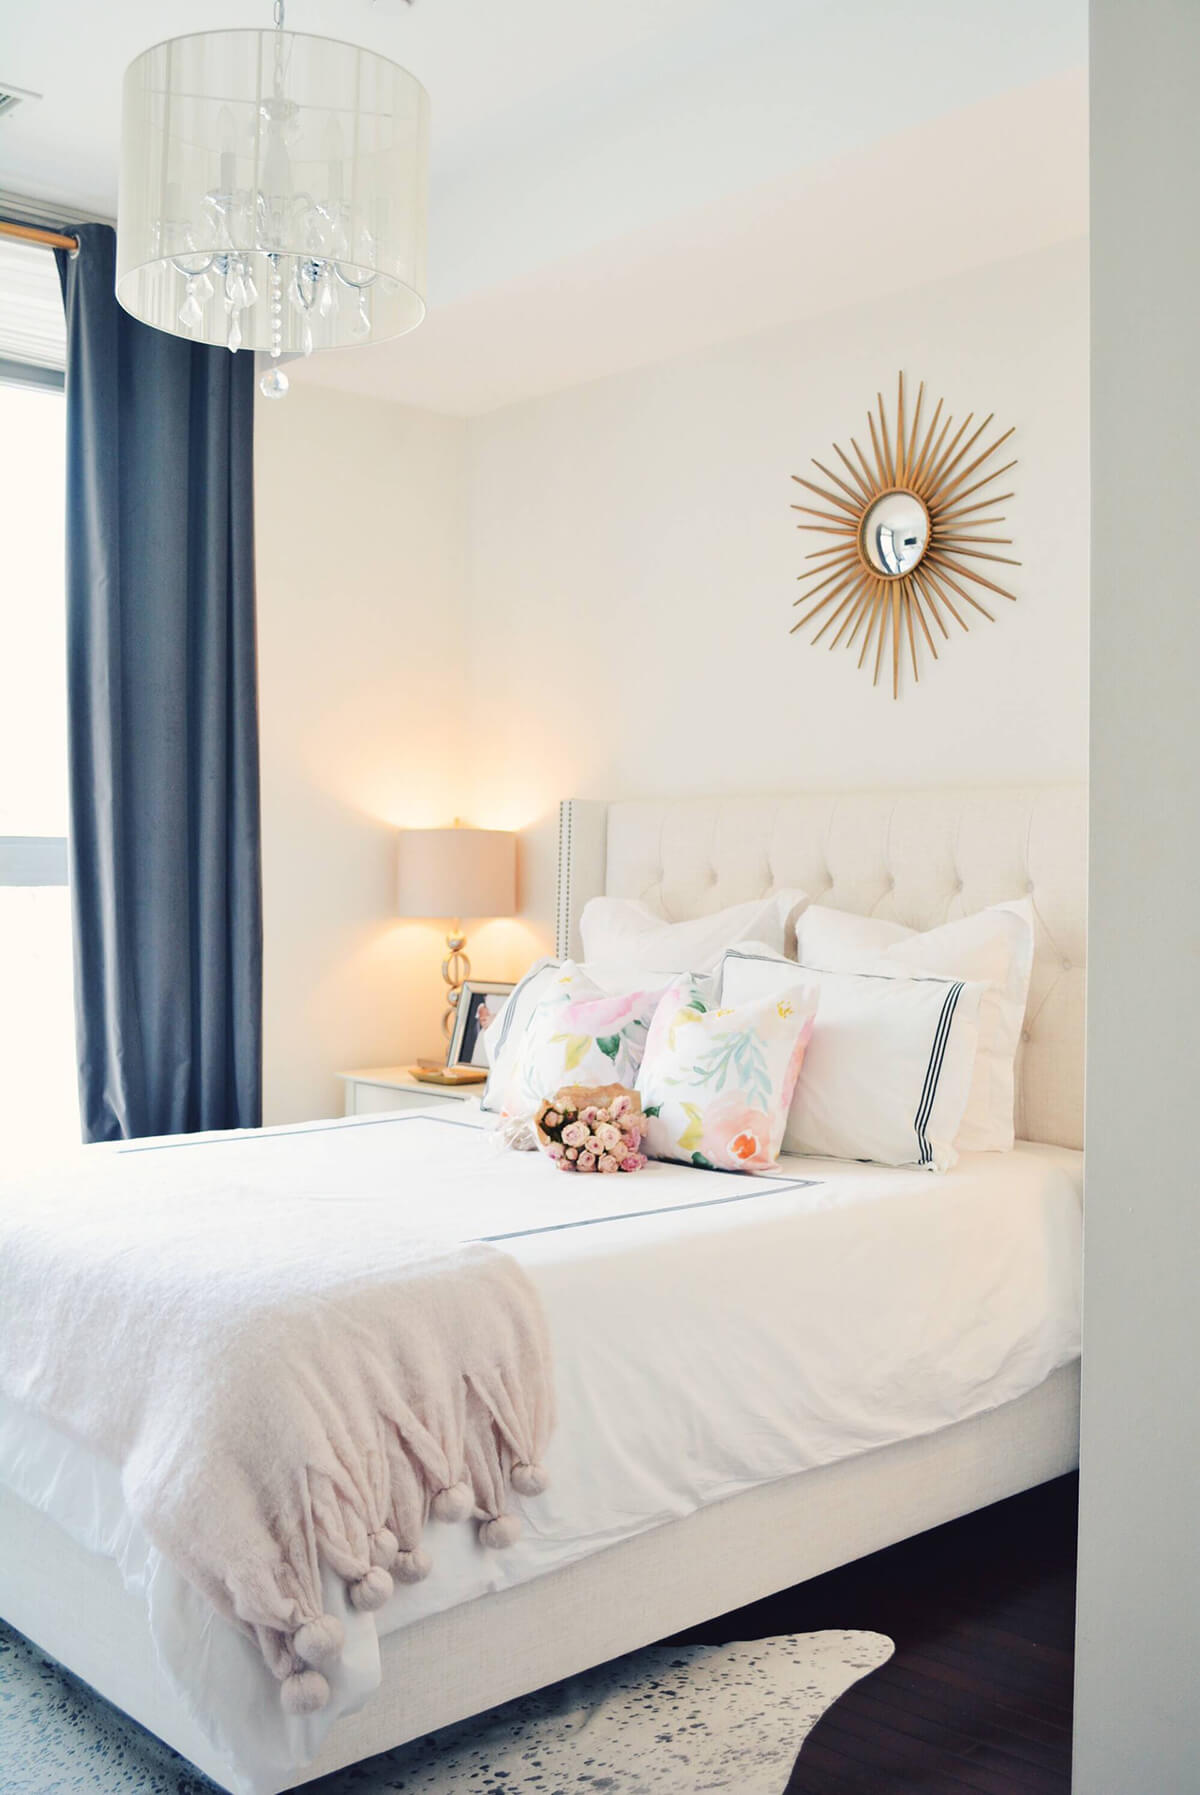 14 Best Trendy Bedroom Decor and Design Ideas for 2020 on Trendy Bedroom Ideas  id=40503